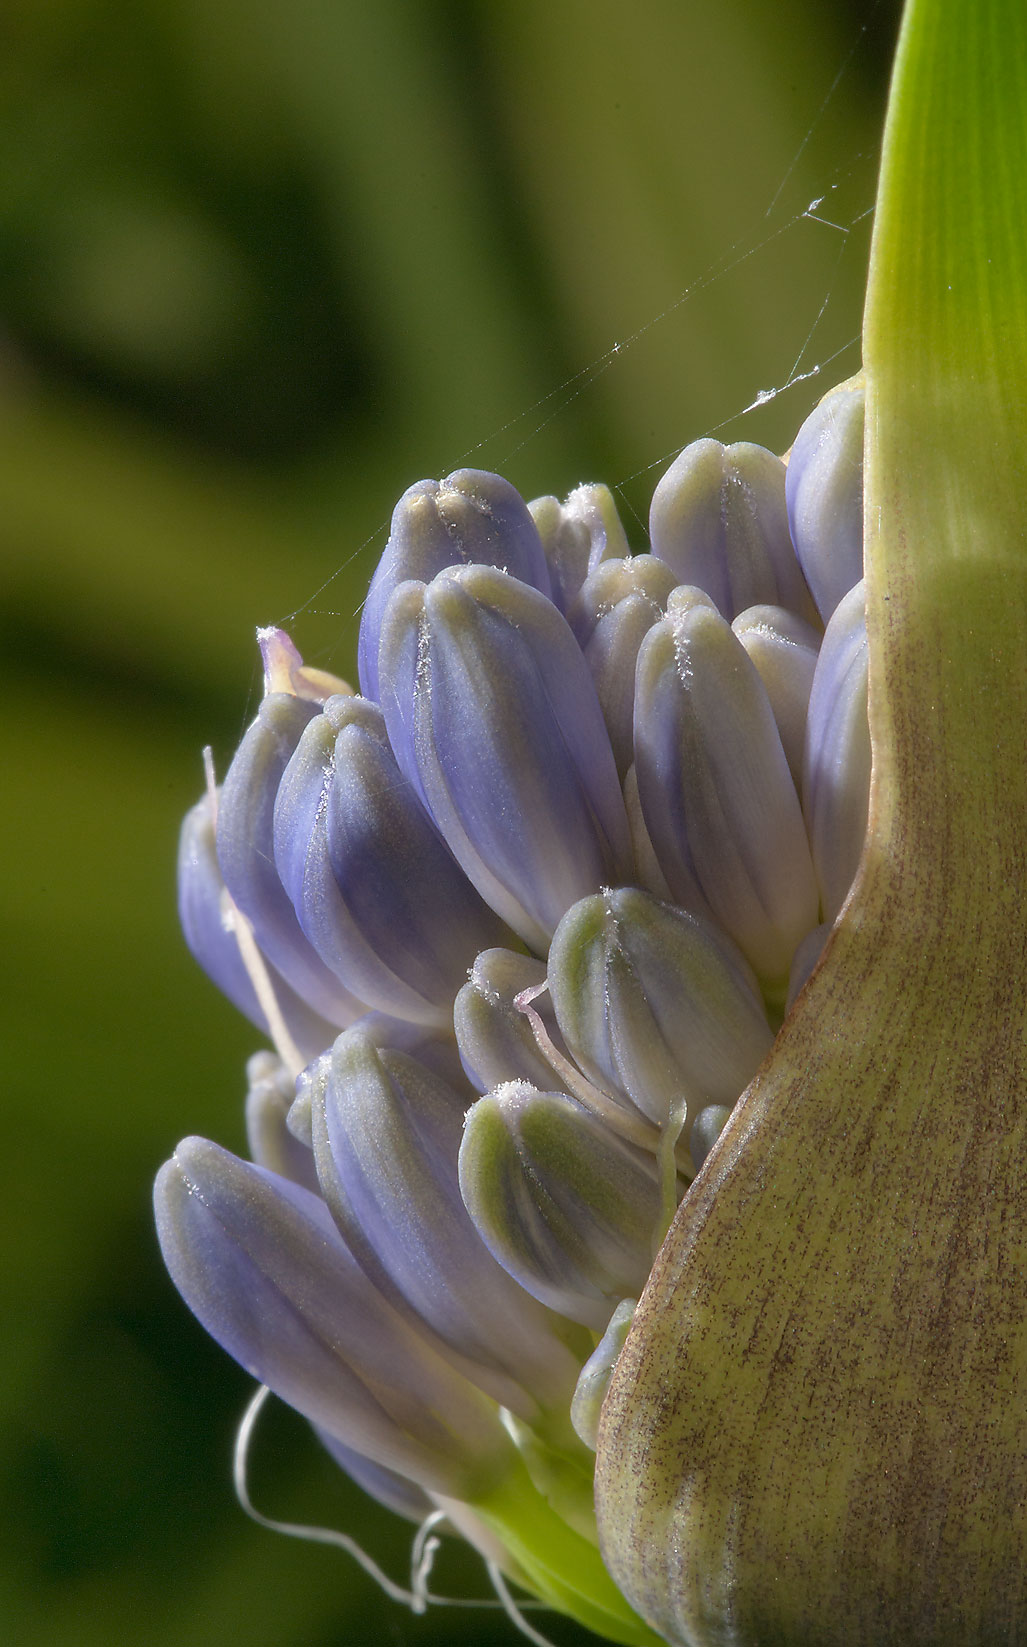 Buds of blue lily in Mercer Arboretum and Botanical Gardens. Humble (Houston area), Texas